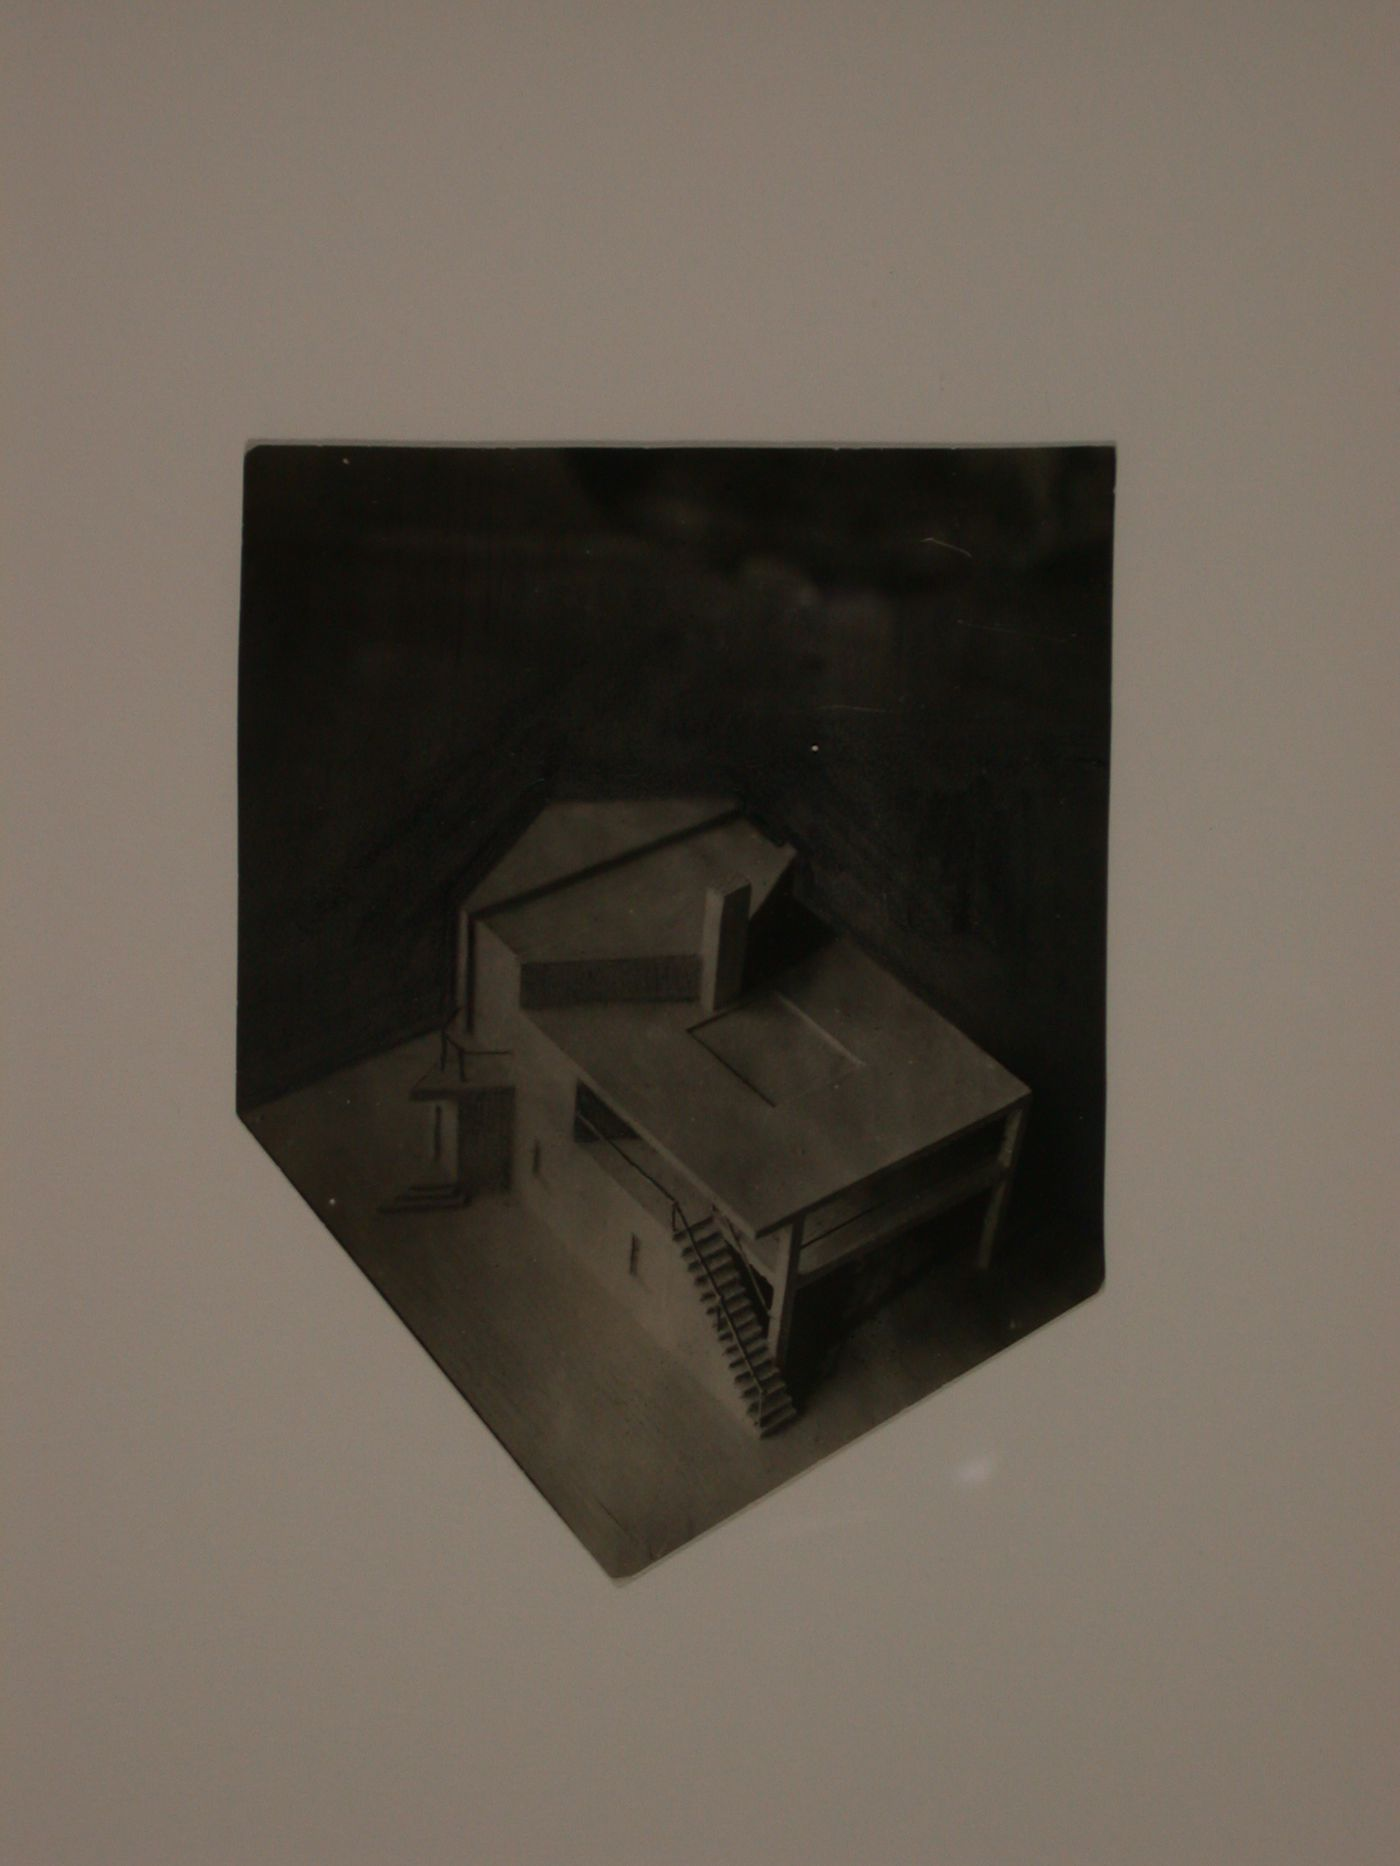 Photograph of the model for an unidentified building